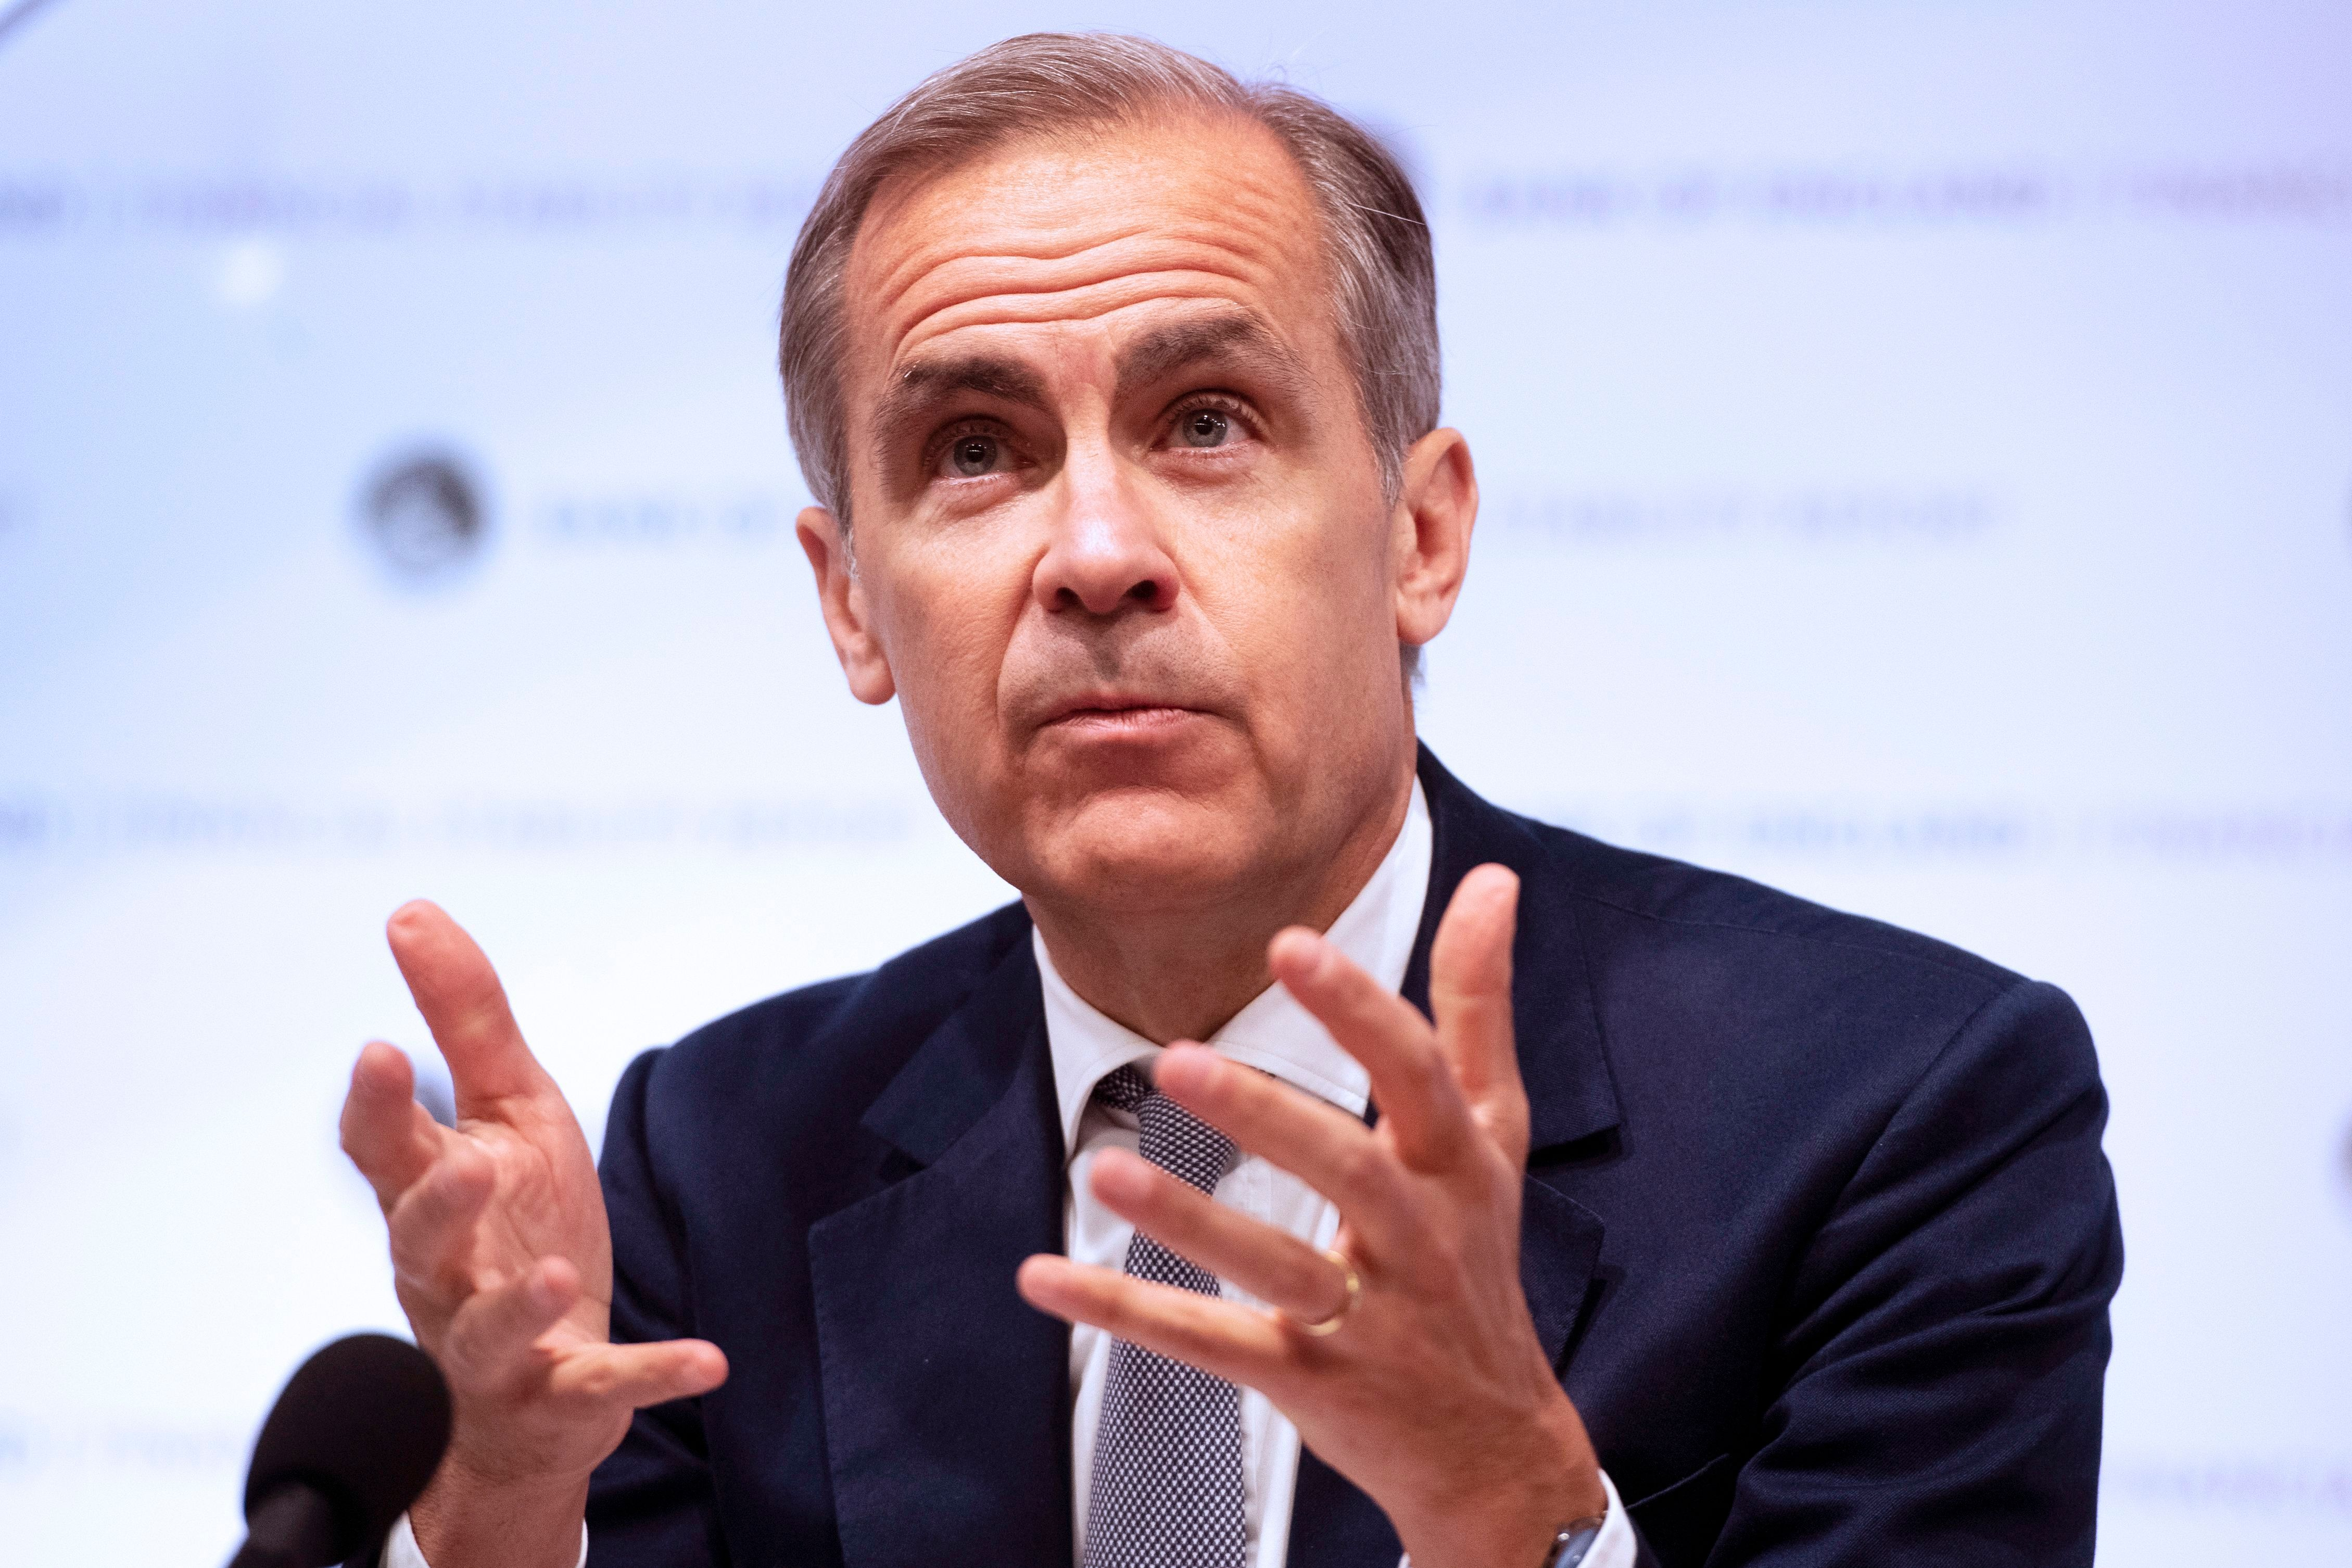 Mark CarneyBank of England release Financial Stability Report, London, United Kingdom - 27 Jun 2018 Bank of England Governor Mark Carney delivers the banks financial stability report at the Bank of England in London, Britain, 27 June 2018. According to the Bank of England in its financial stability report by the Financial Policy Committee, the (FPC) continues to judge that, apart from those related to Brexit, domestic risks remain standard overall. In recent months there has been some reduction in domestic risk appetite, although it remains strong.